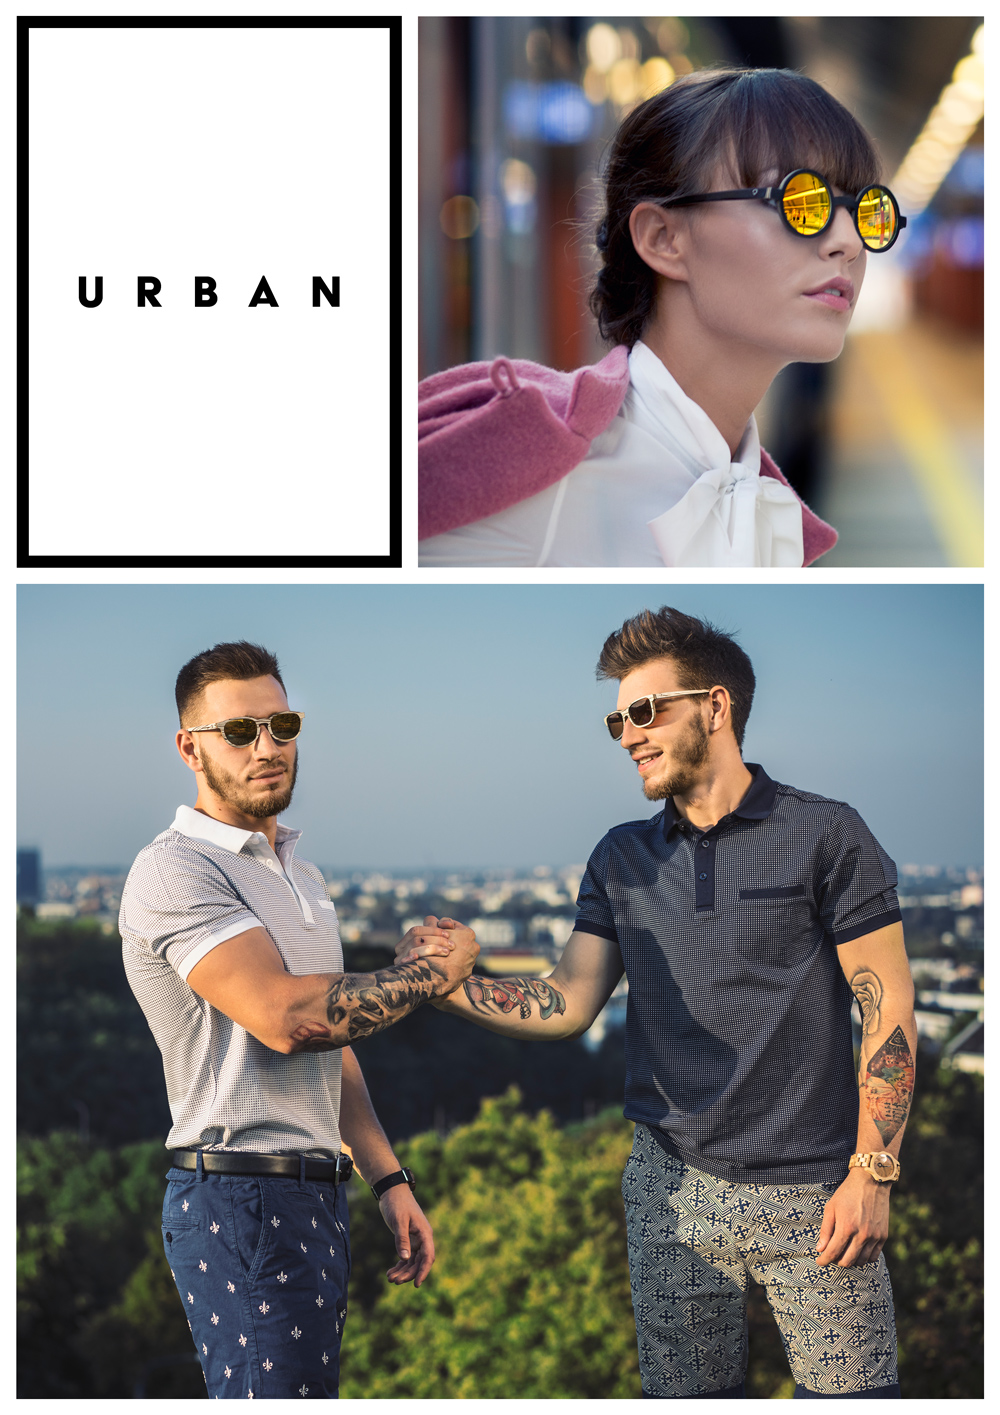 plantwear_fb_lookbook_srodek1_urban_201610